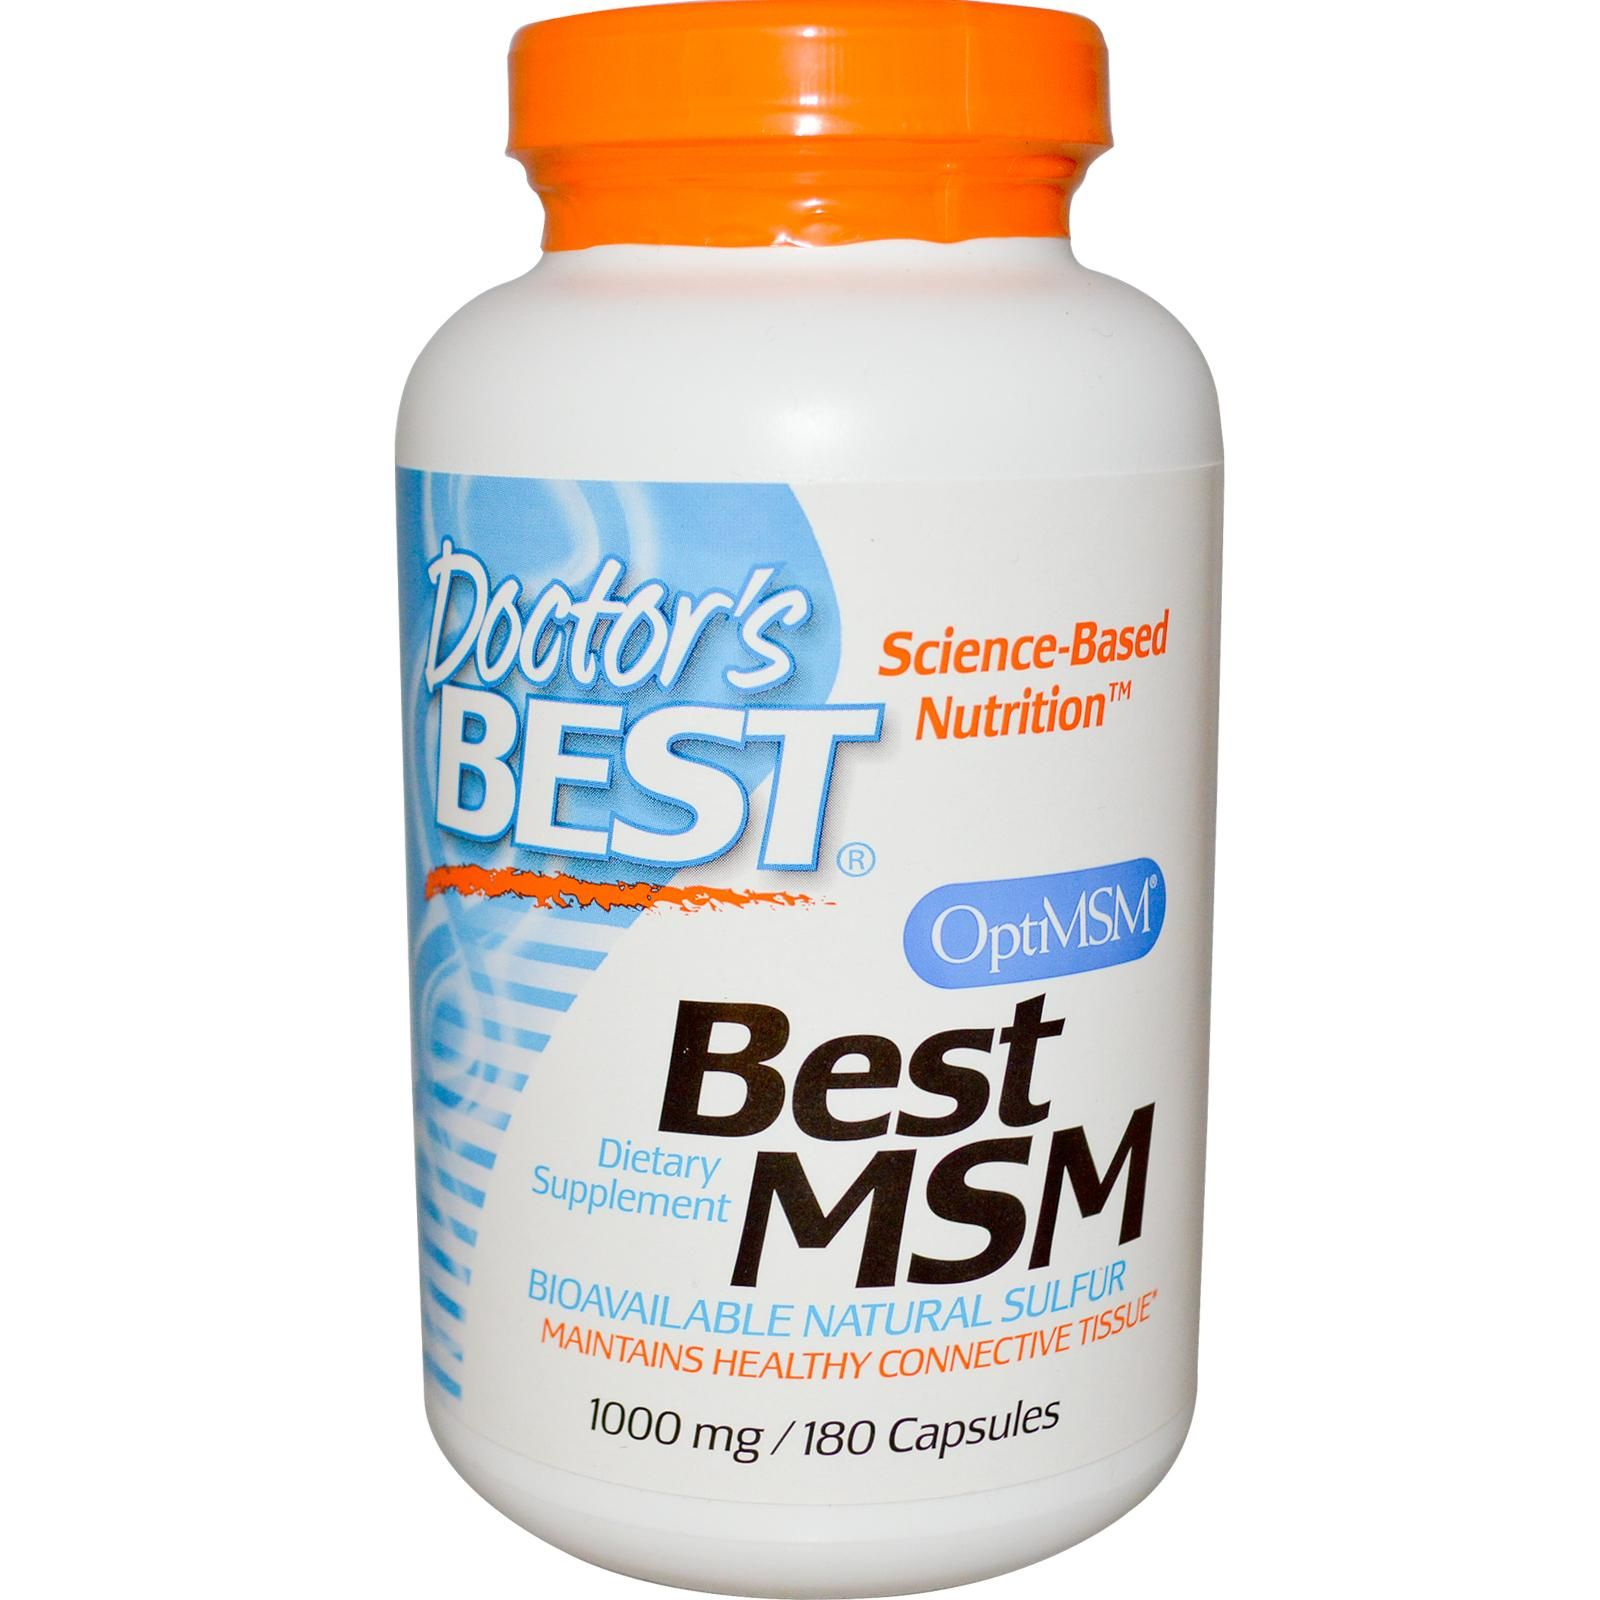 Doctors best msm with optimsm 1000 mg 180 capsules